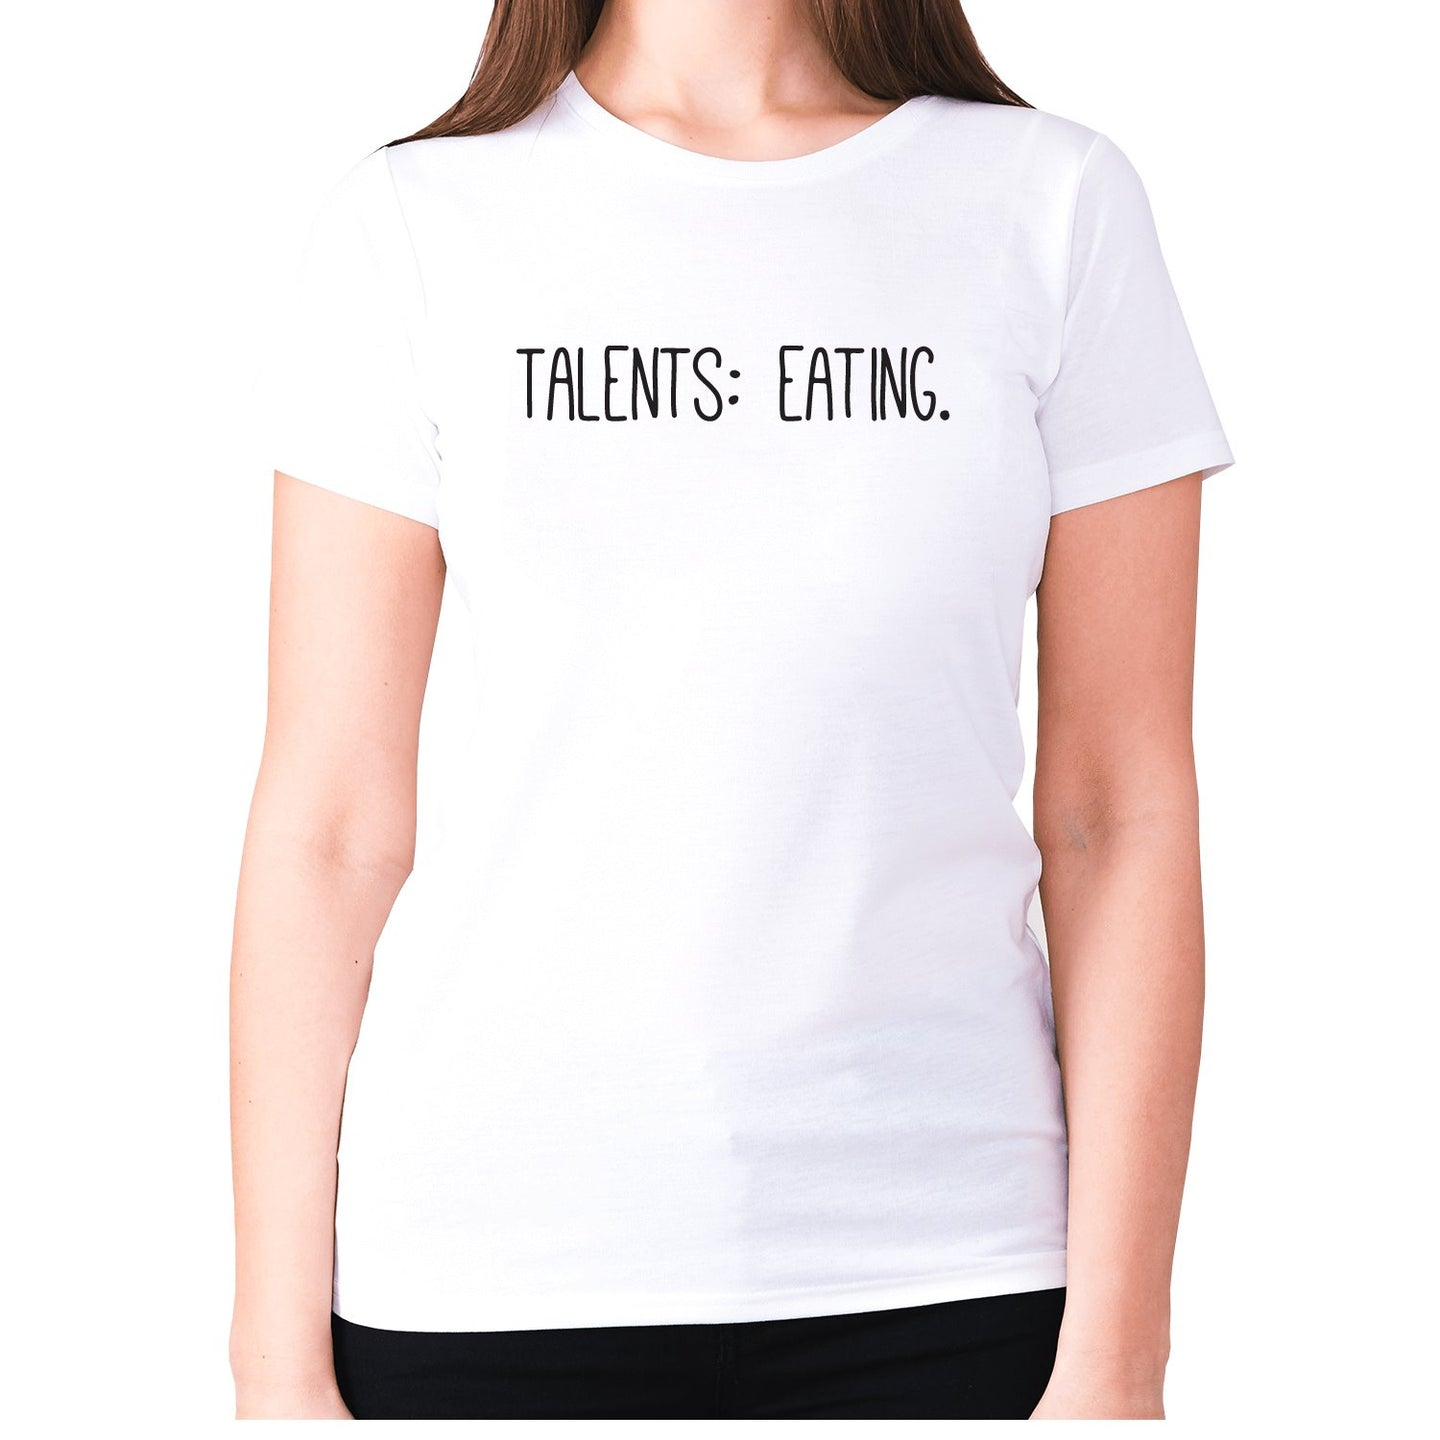 Talents eating - women's premium t-shirt - White / S - Graphic Gear